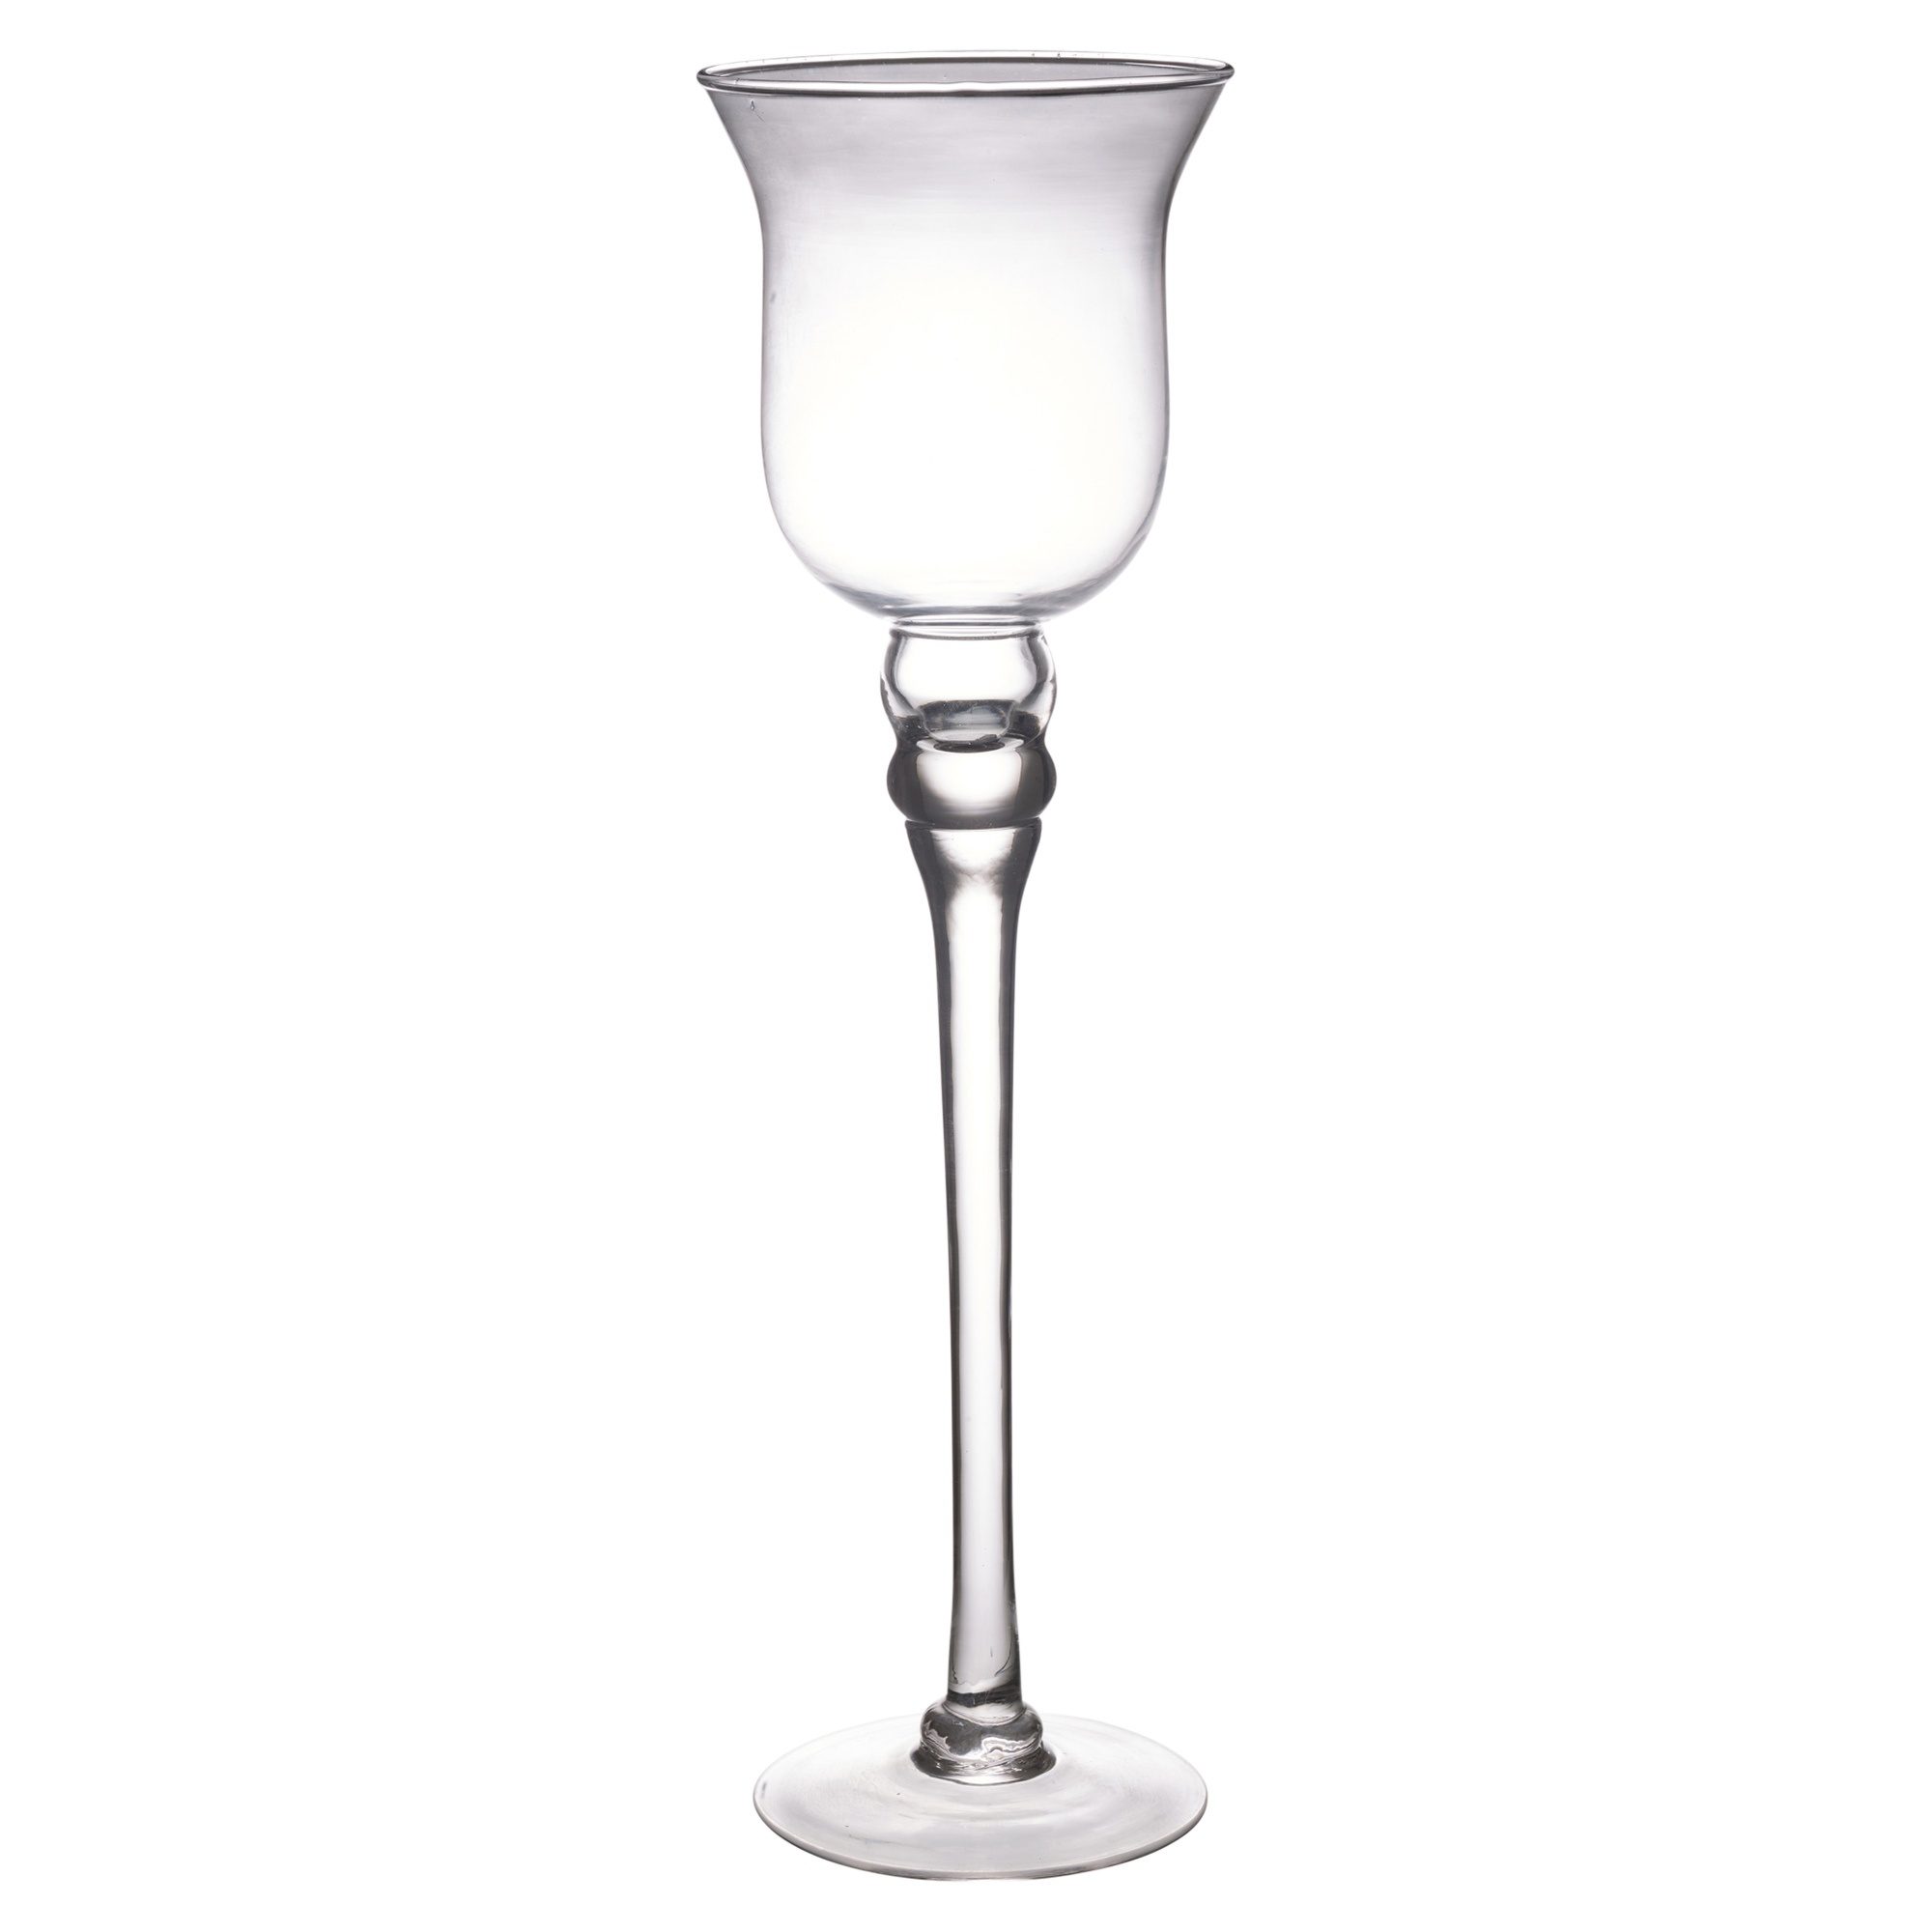 Set of tall glass candle holders large centerpiece tea